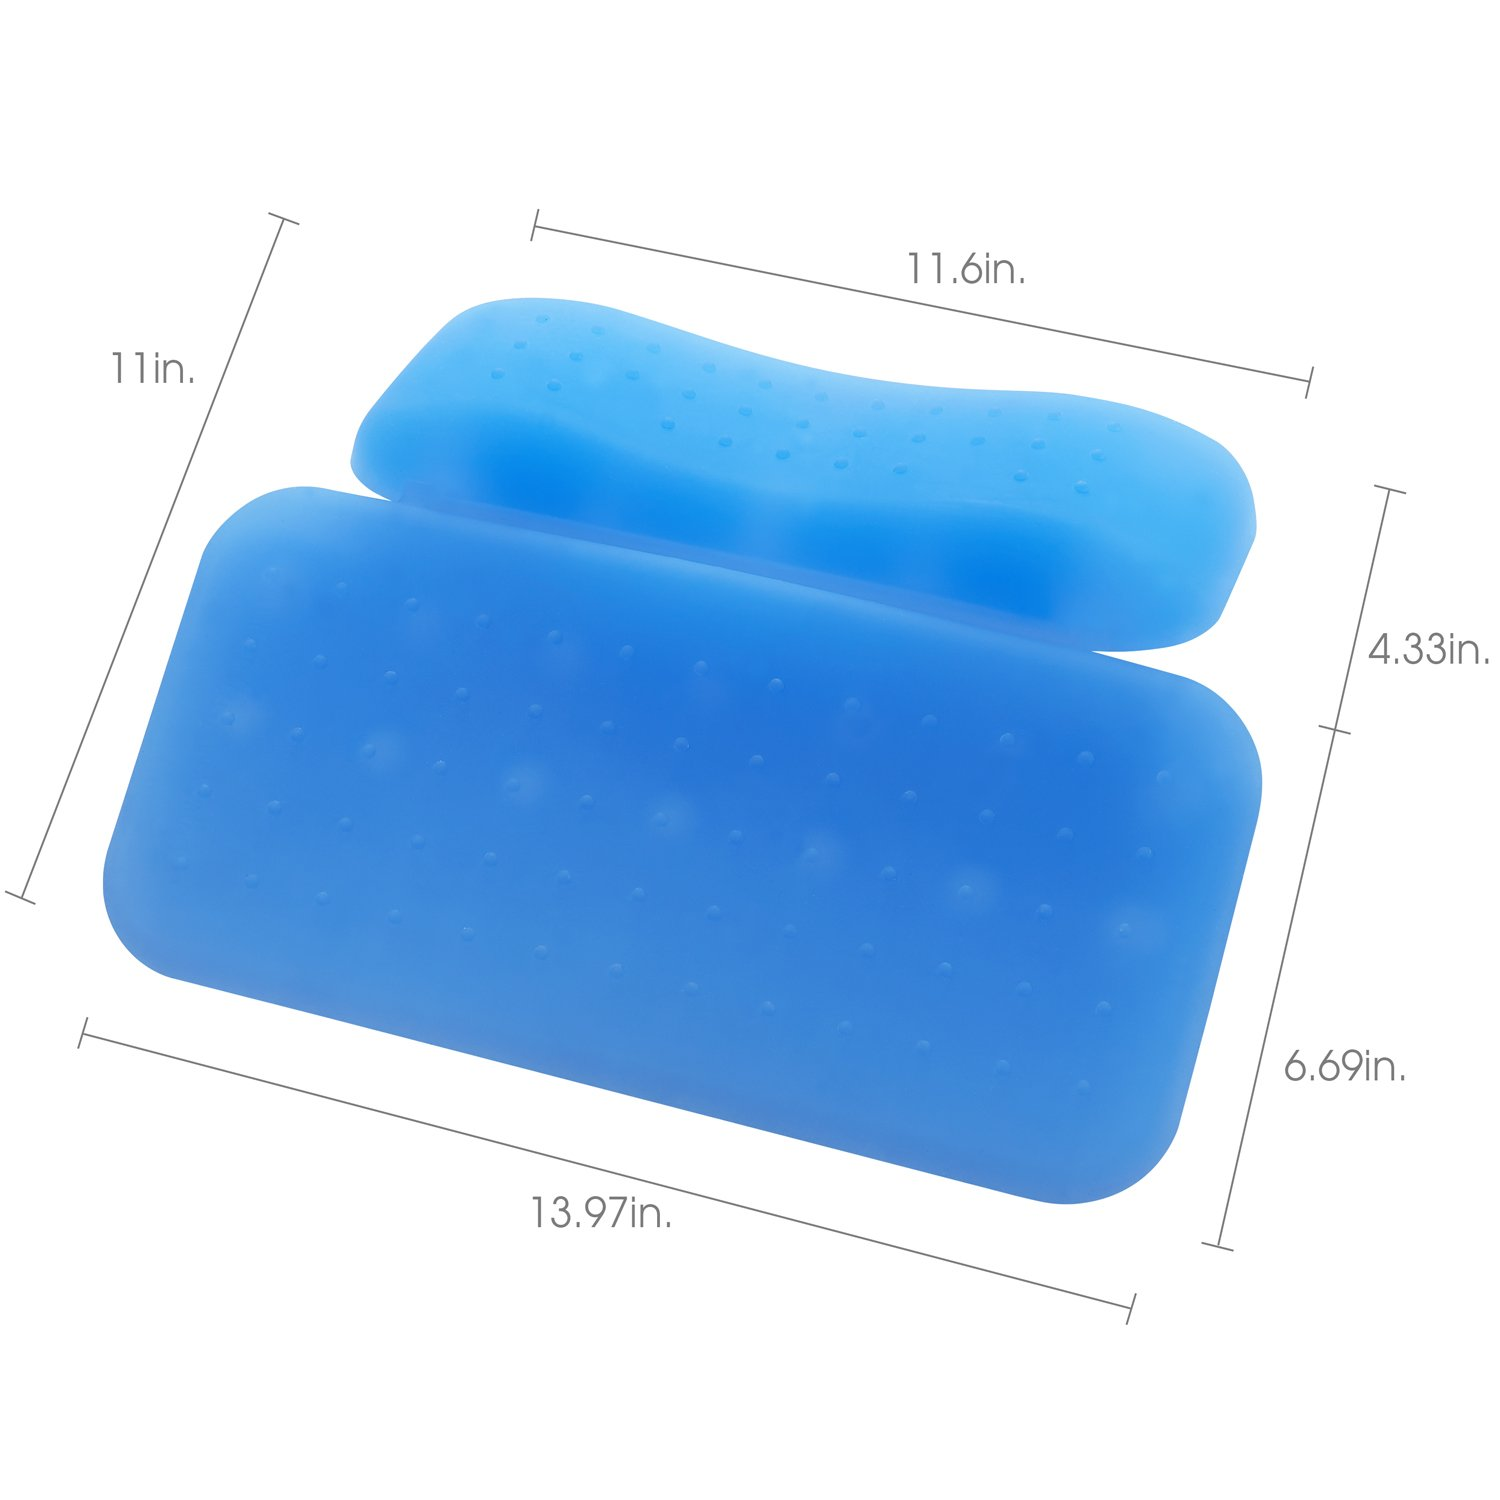 Luxurious Silicone Bathtub Pillow 14'' x 10'',2-Panel Design for Shoulder & Neck Support. Non-Slip, Extra Thick, Soft and Large, Anti-bacterial by Silicone. Fits Any Size Tub. Luxury Spa Tub Pillows. by Universal product (Image #3)